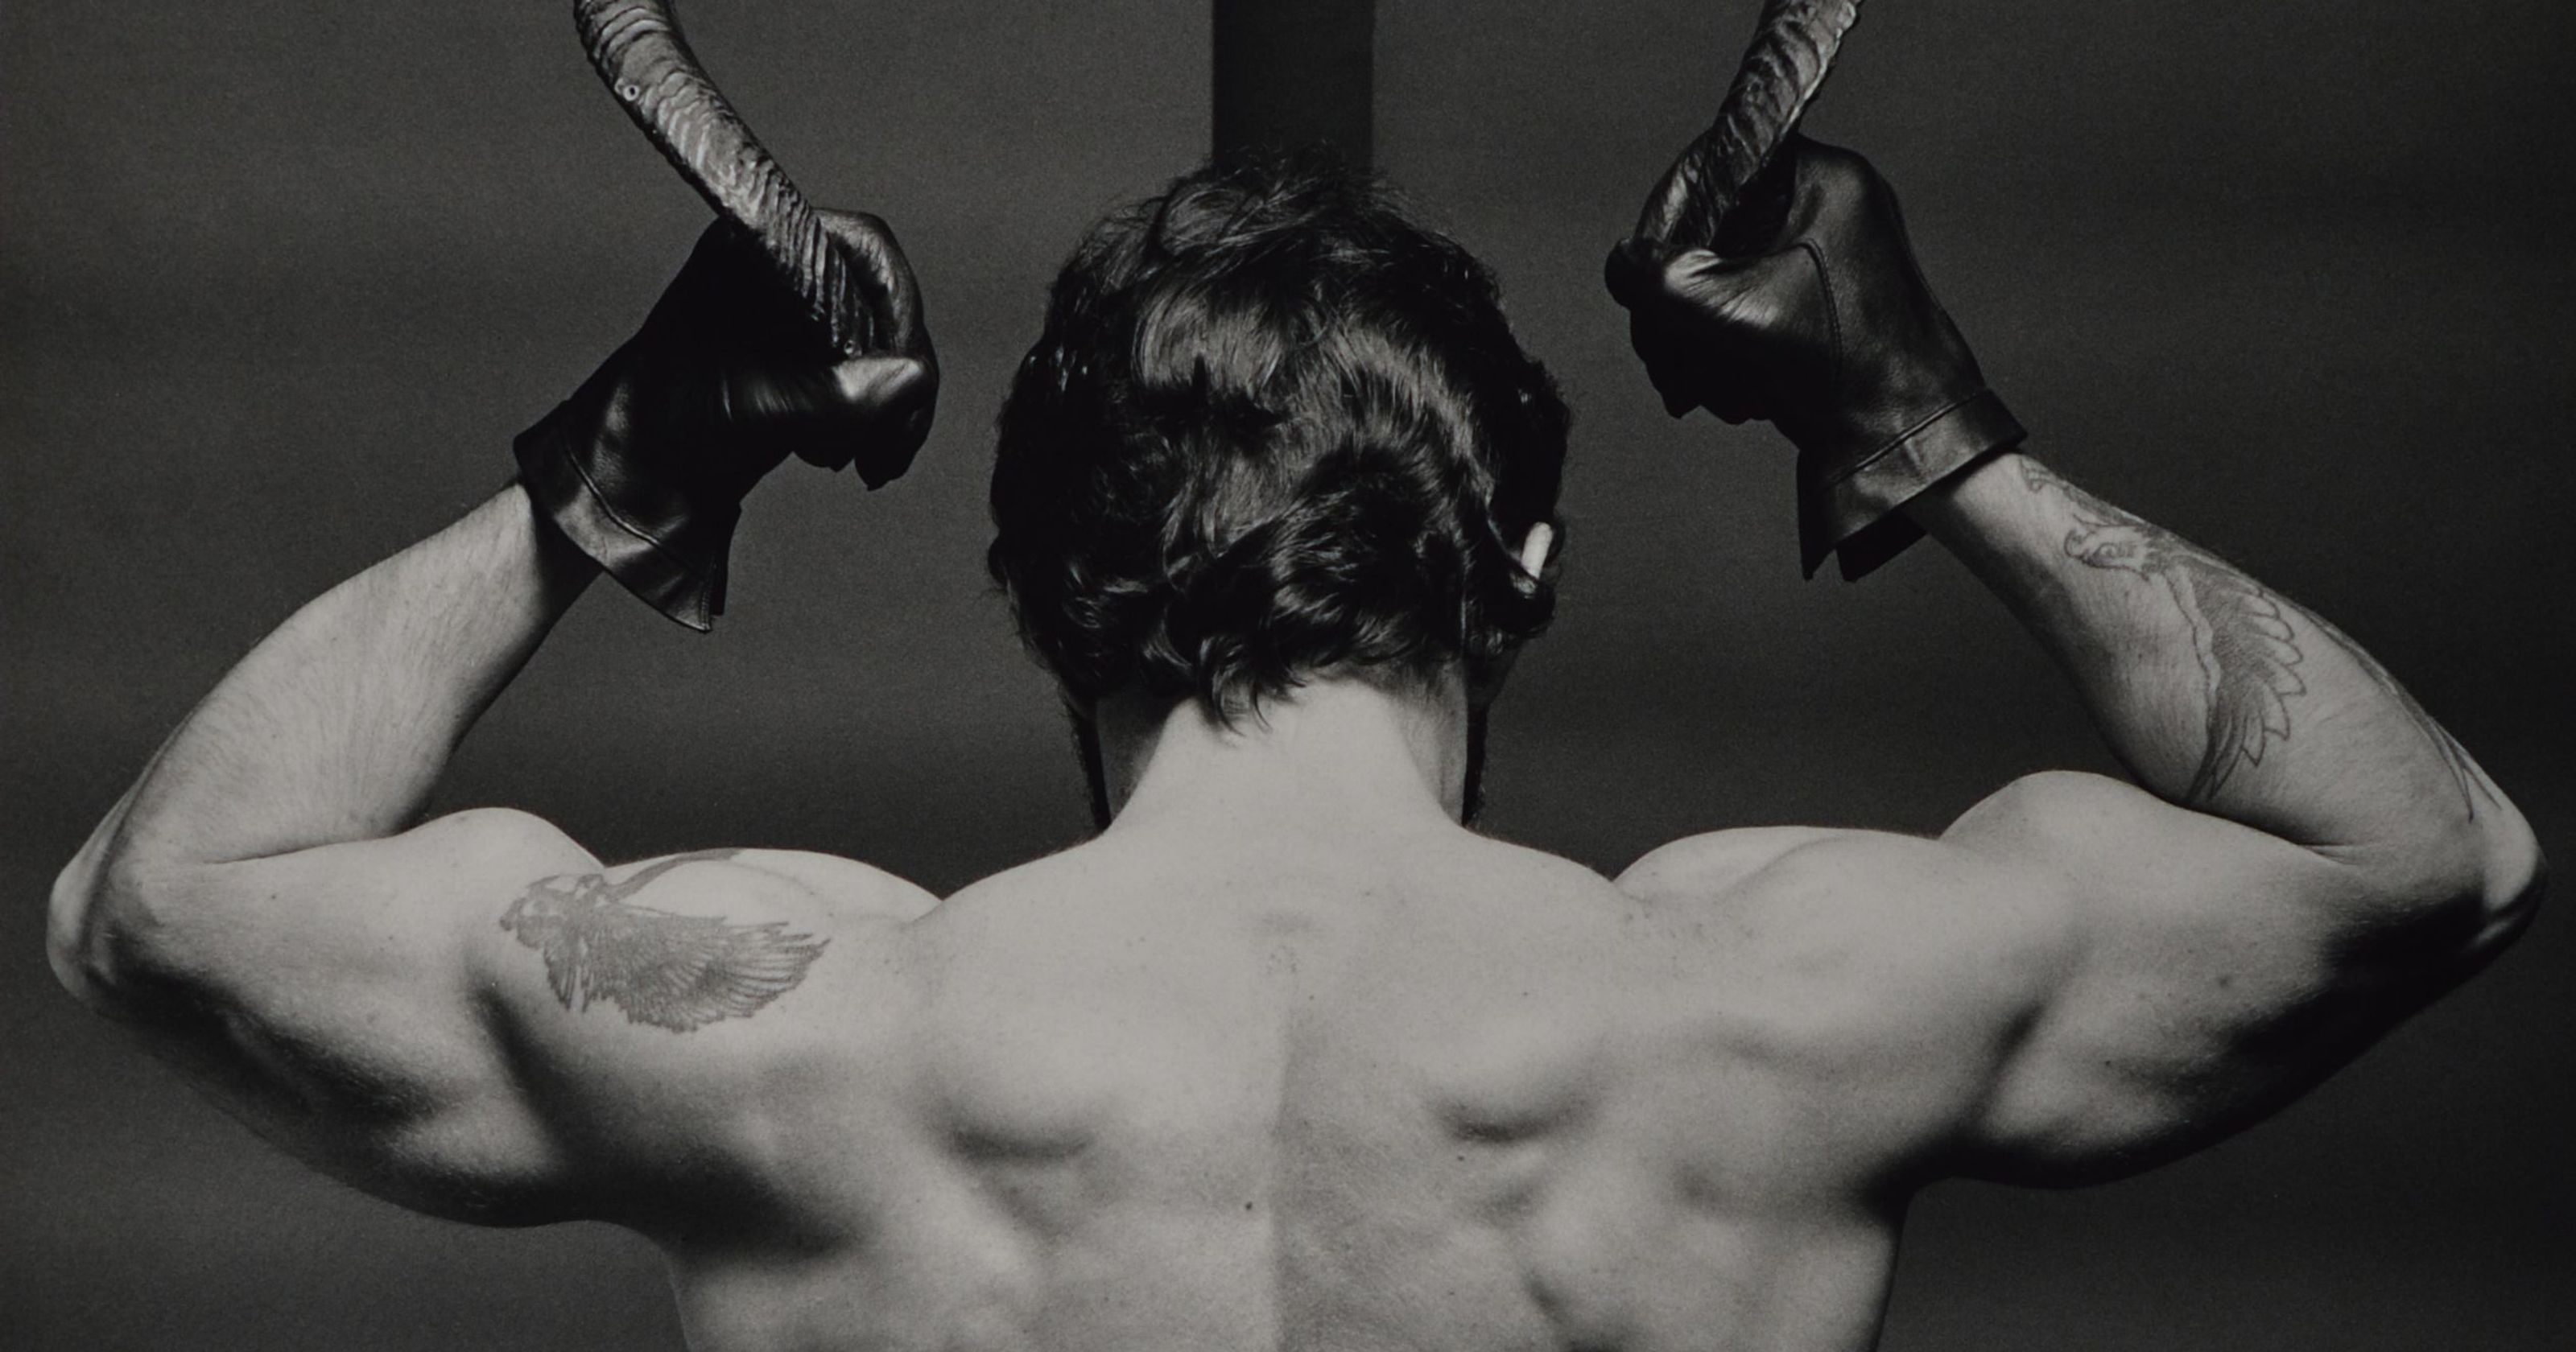 Colección s&m Mapplethorpe